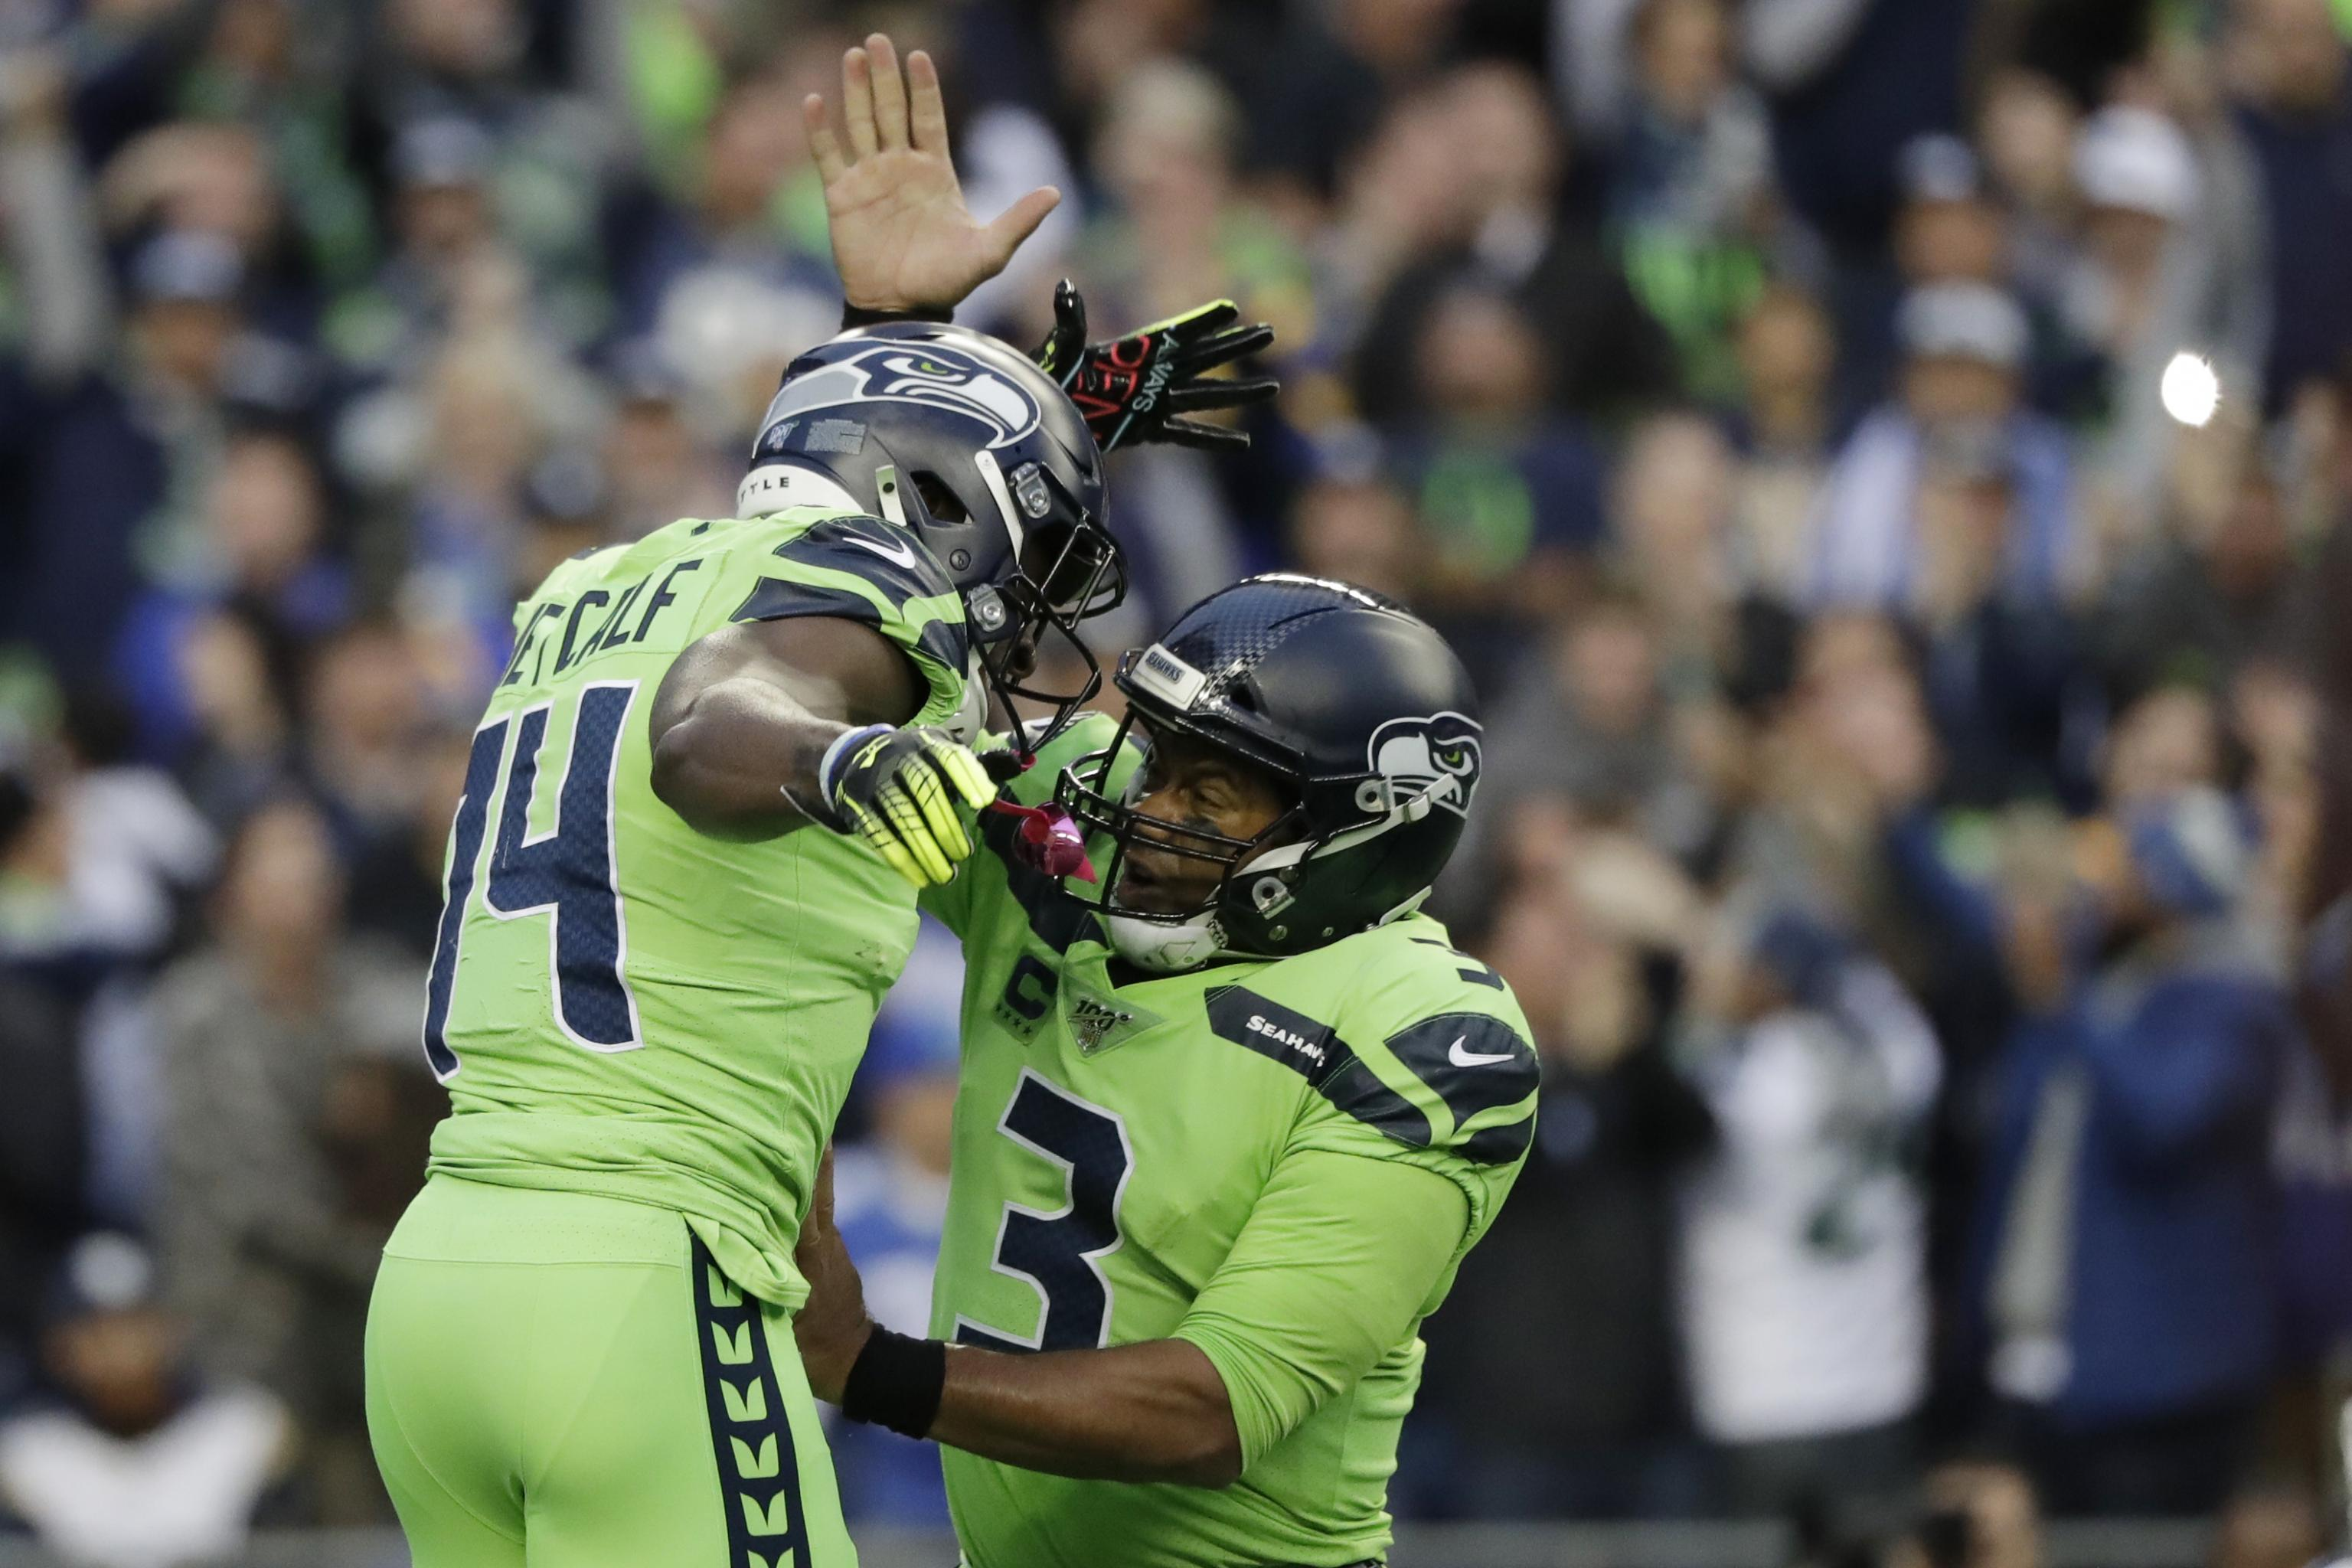 Seahawks Russell Wilson Says He Taught Dk Metcalf How To Swim In Offseason Bleacher Report Latest News Videos And Highlights